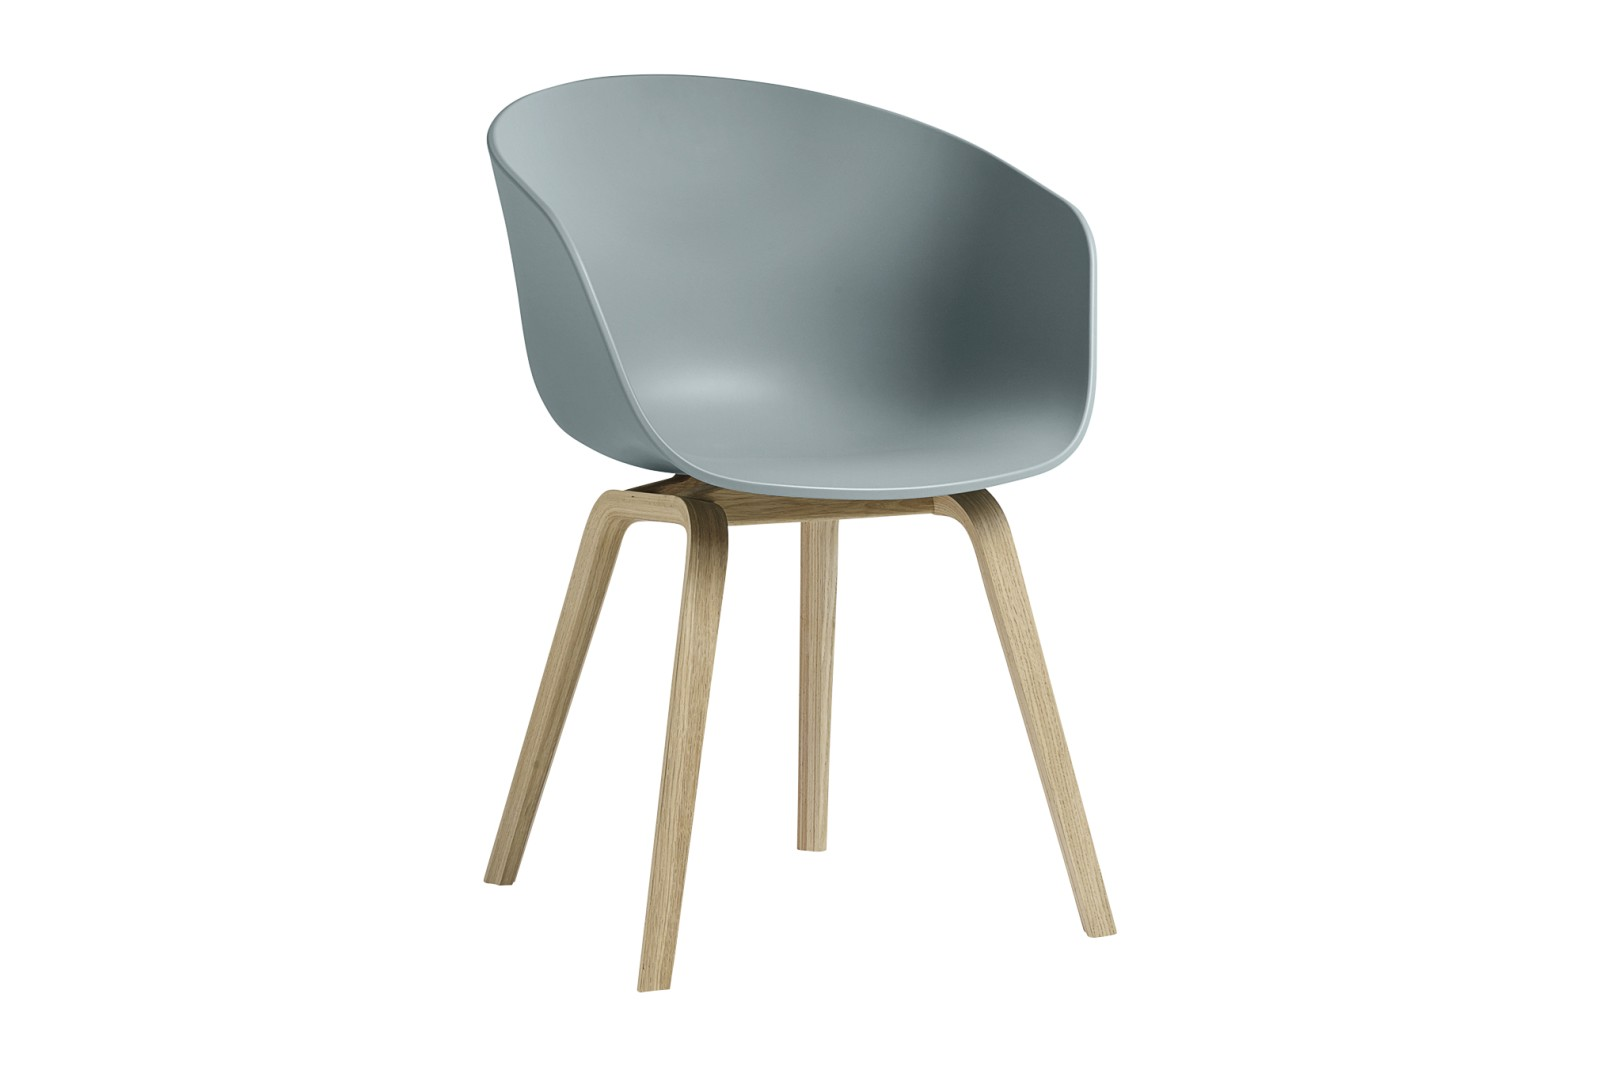 About A Chair AAC22 Dusty Blue Seat, Matt Lacquered Oak Base